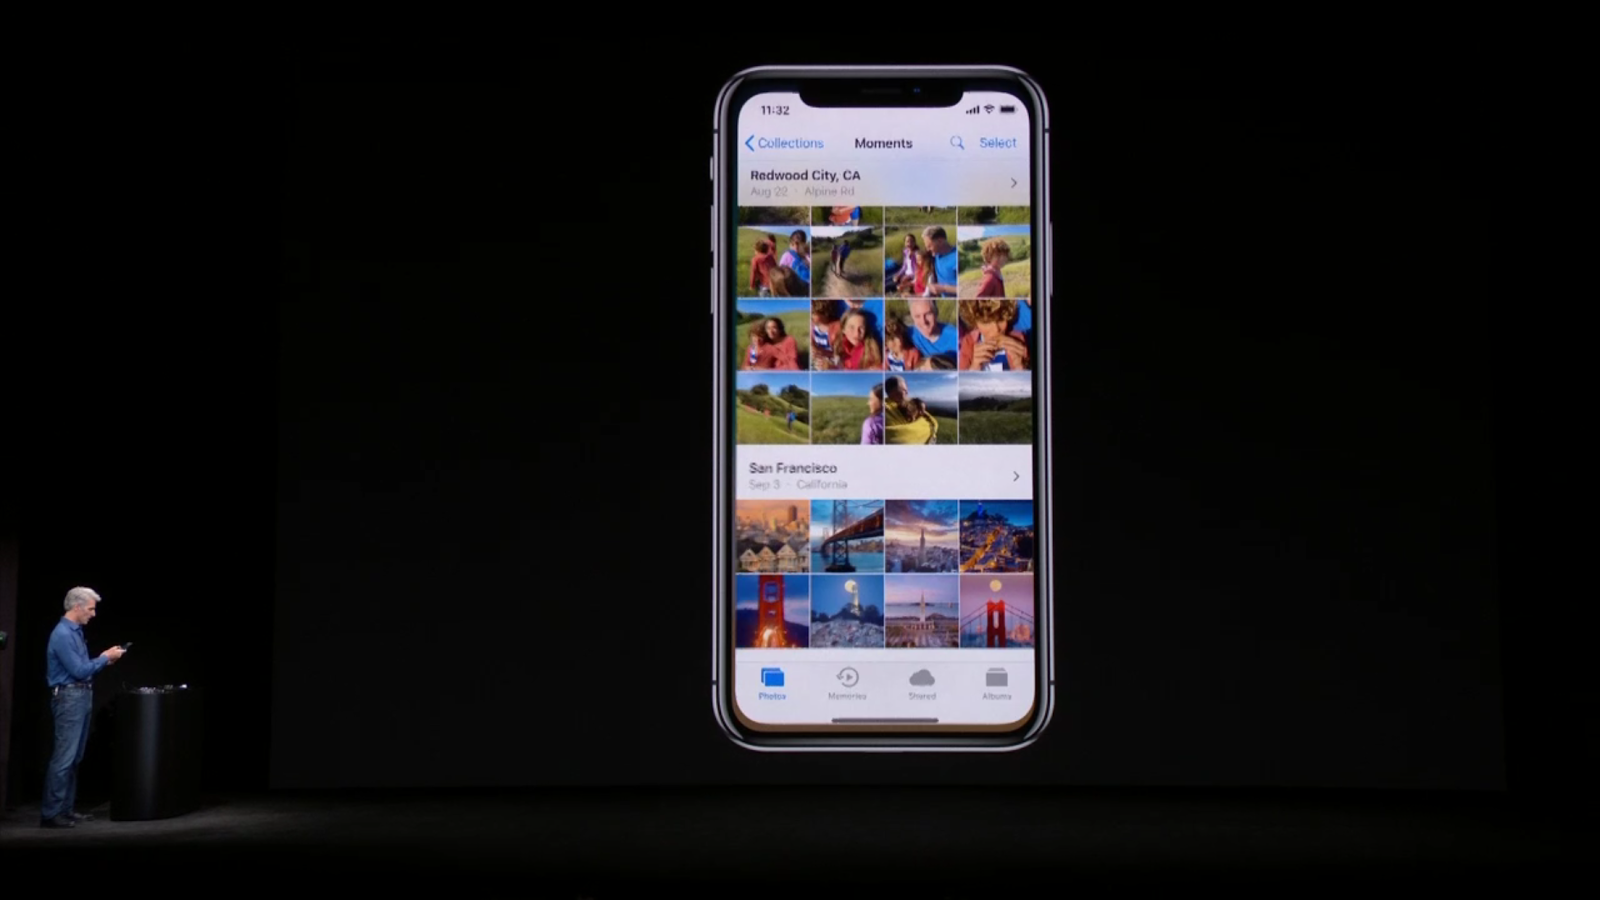 IMG_4133 Check out the Stunning iPhone X (iPhone 10) images Apple